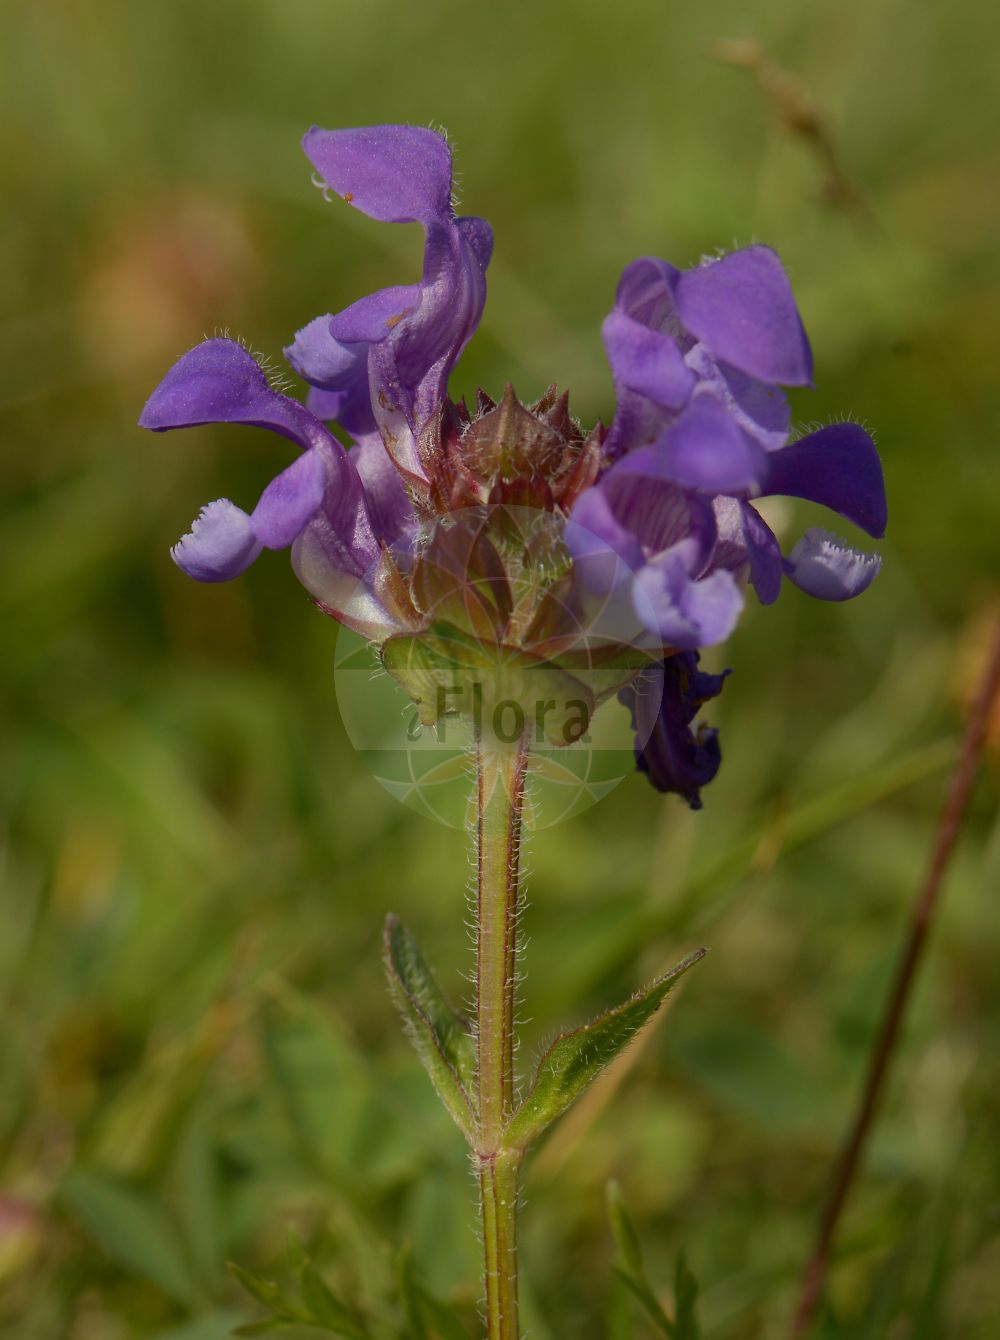 Foto von Prunella grandiflora (Grossbluetige Braunelle - Large-flowered Selfheal). Das Bild zeigt Bluete. Das Foto wurde in Muenzenberg, Wetteraukreis, Hessen, Deutschland, Wetterau und Giessener Becken aufgenommen. ---- Photo of Prunella grandiflora (Grossbluetige Braunelle - Large-flowered Selfheal).The image is showing flower.The picture was taken in Muenzenberg, Wetterau district, Hesse, Germany, Wetterau and Giessener Becken.(Prunella grandiflora,Grossbluetige Braunelle,Large-flowered Selfheal,Prunella vulgaris var. grandiflora,Grossblueten-Brunelle,Grossbluetige Brunelle,Bigflower Selfheal,Large Selfheal,Prunella,Braunelle,Selfheal,Lamiaceae,Lippenbluetengewaechse;Lippenbluetler,Nettle family,Bluete,flower)